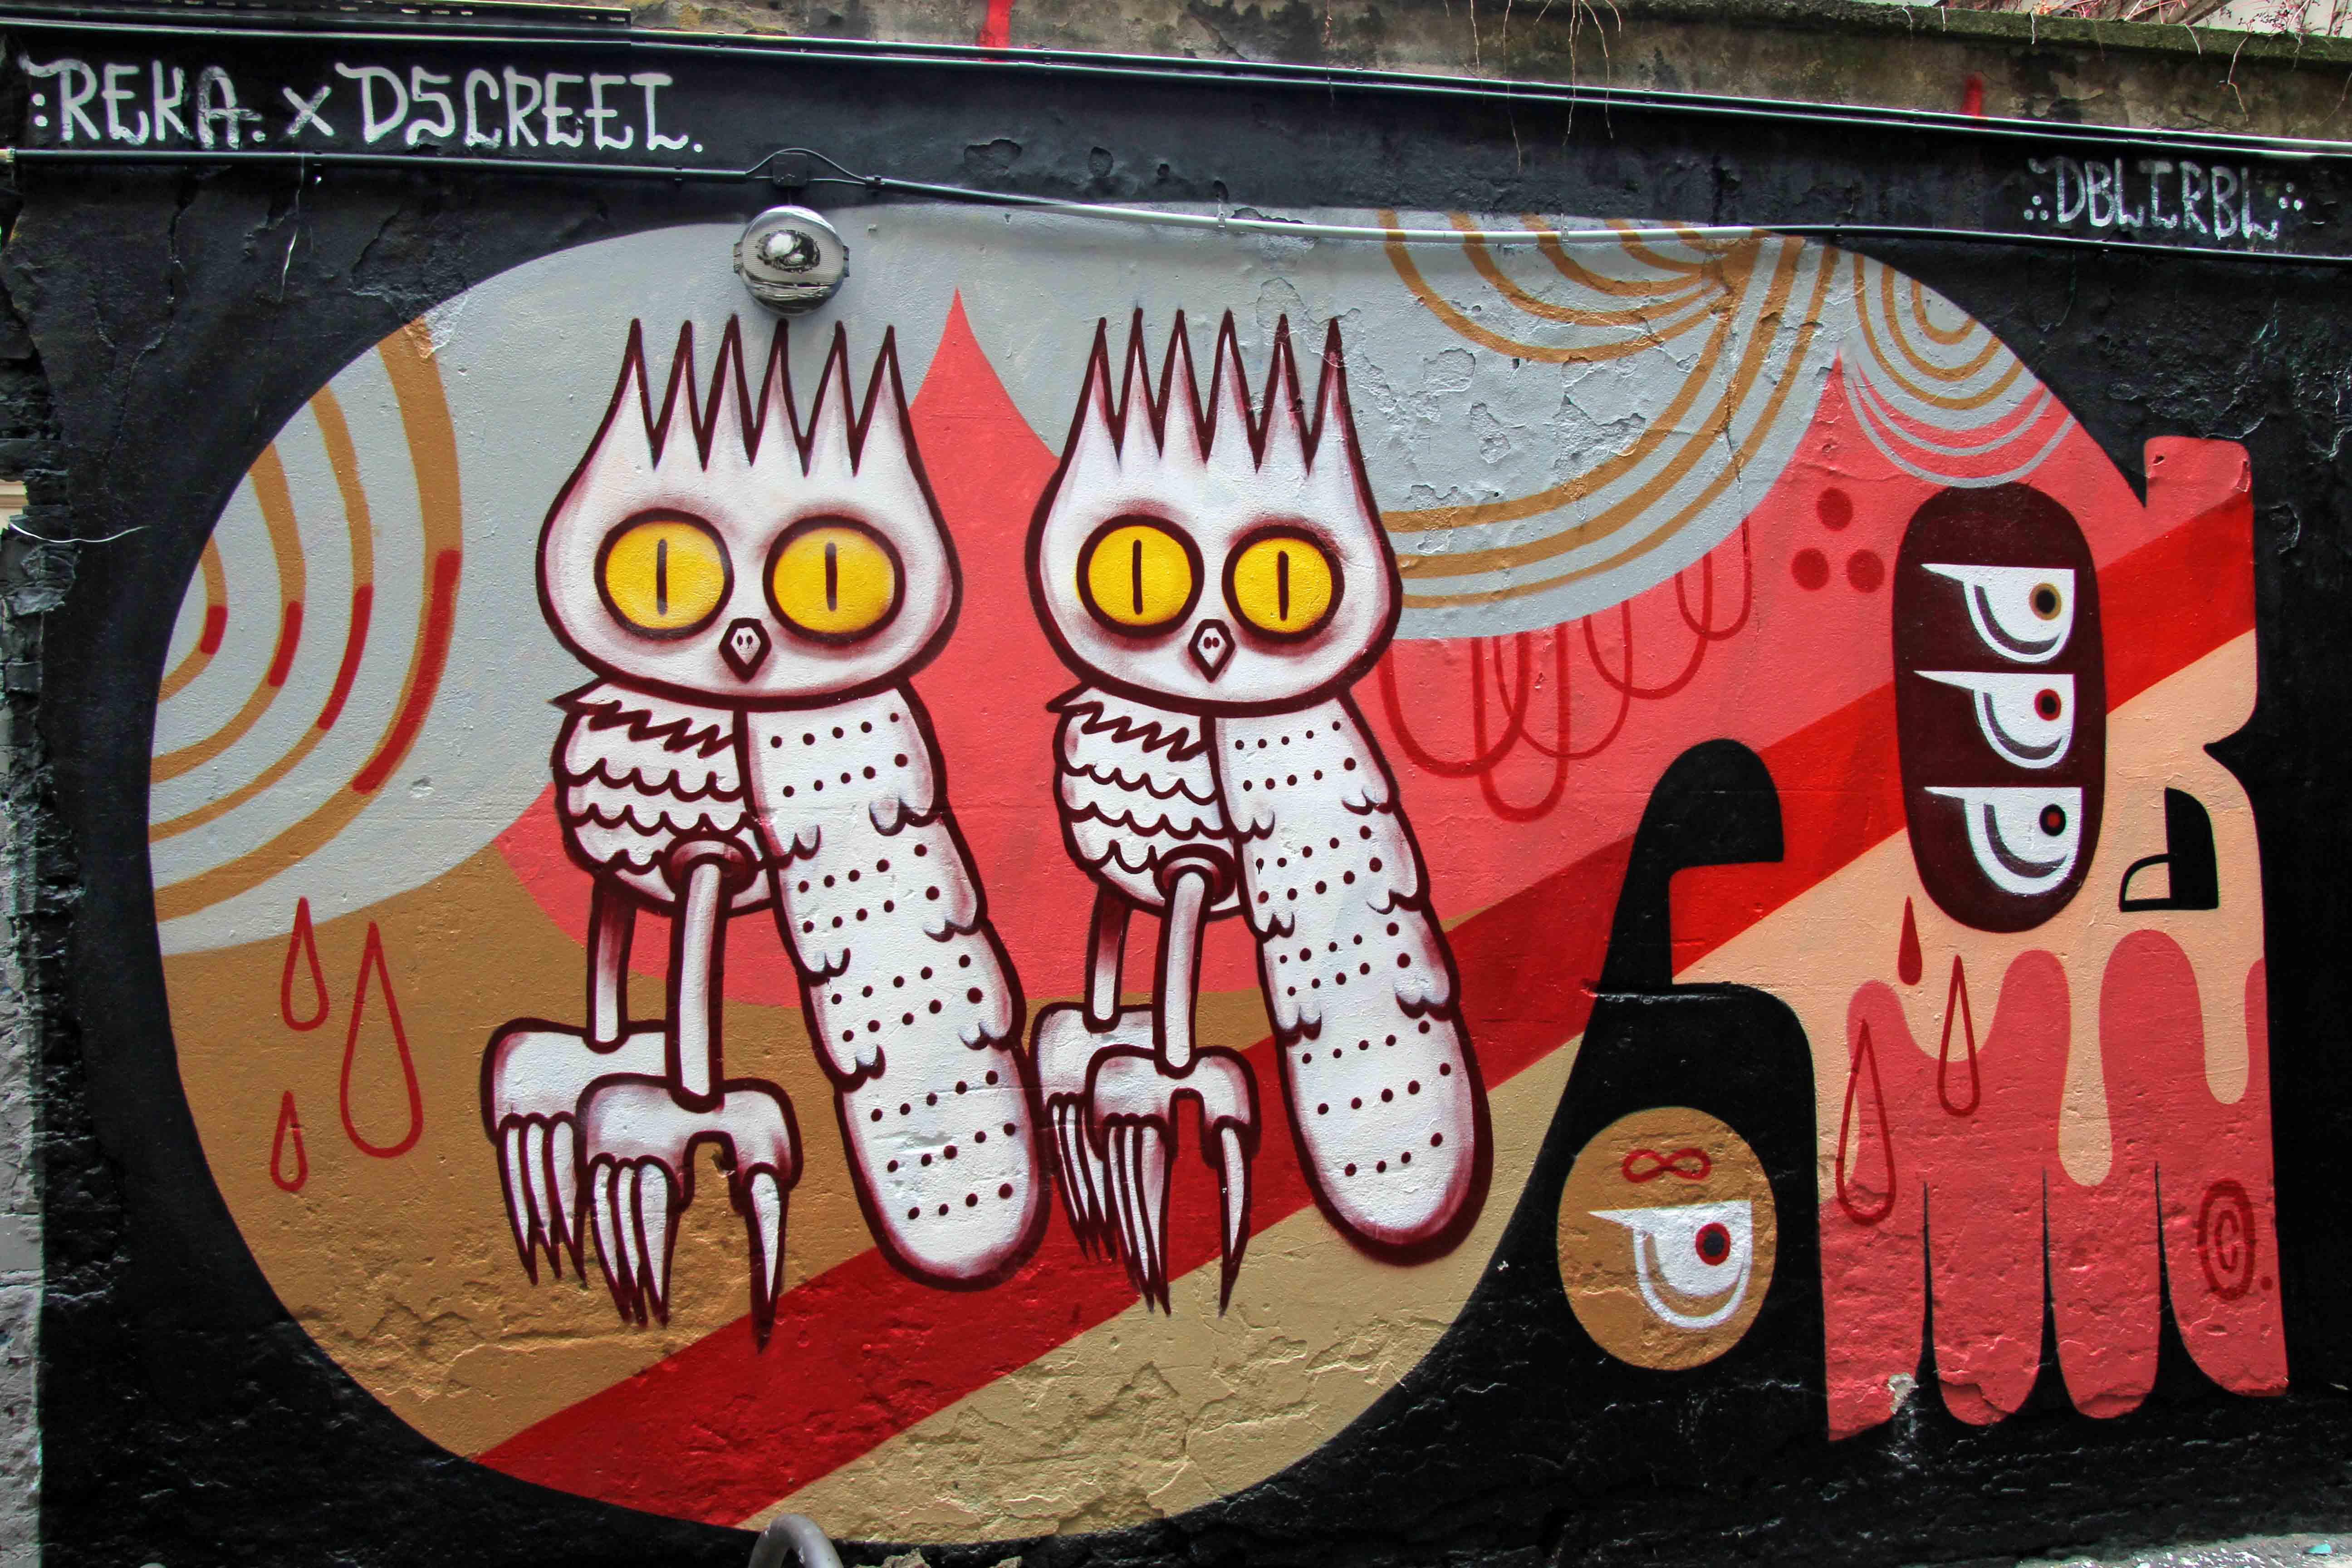 Dbltrbl - Street Art by Reka x Dscreet in Berlin